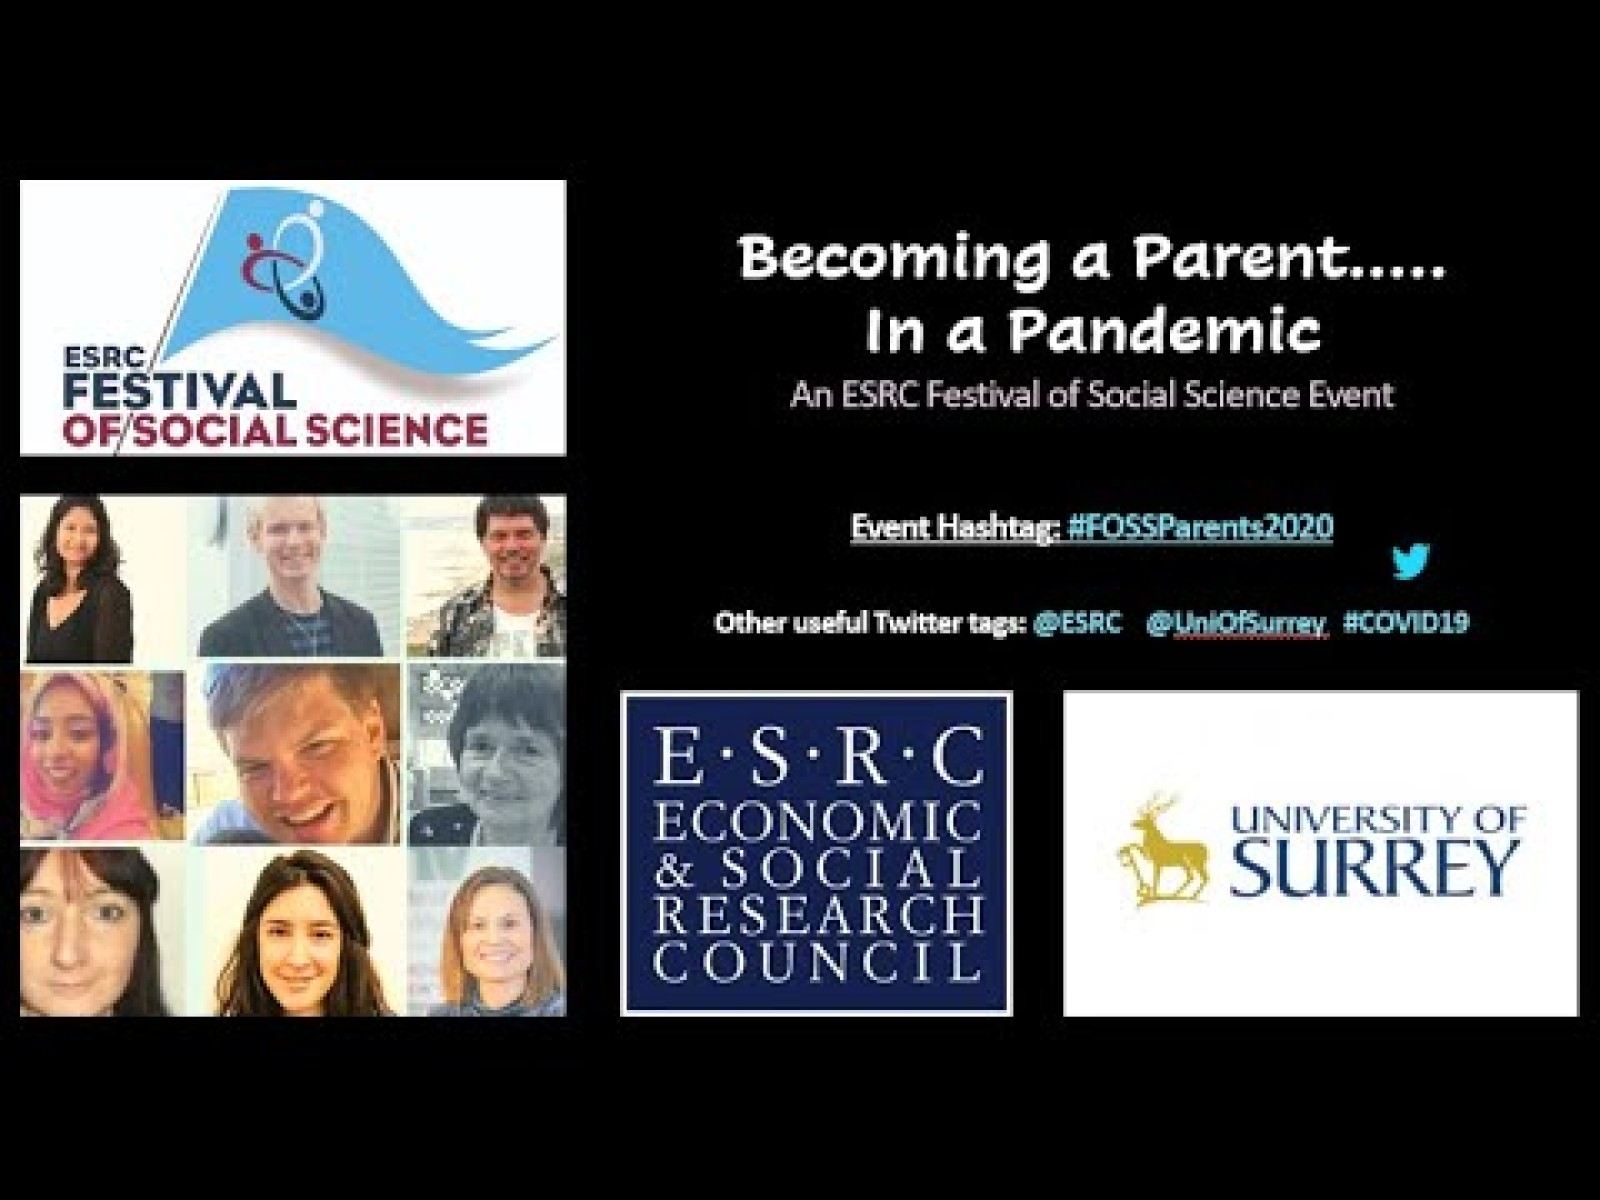 ESRC Festival of Social Science: Becoming a Parent in a Pandemic